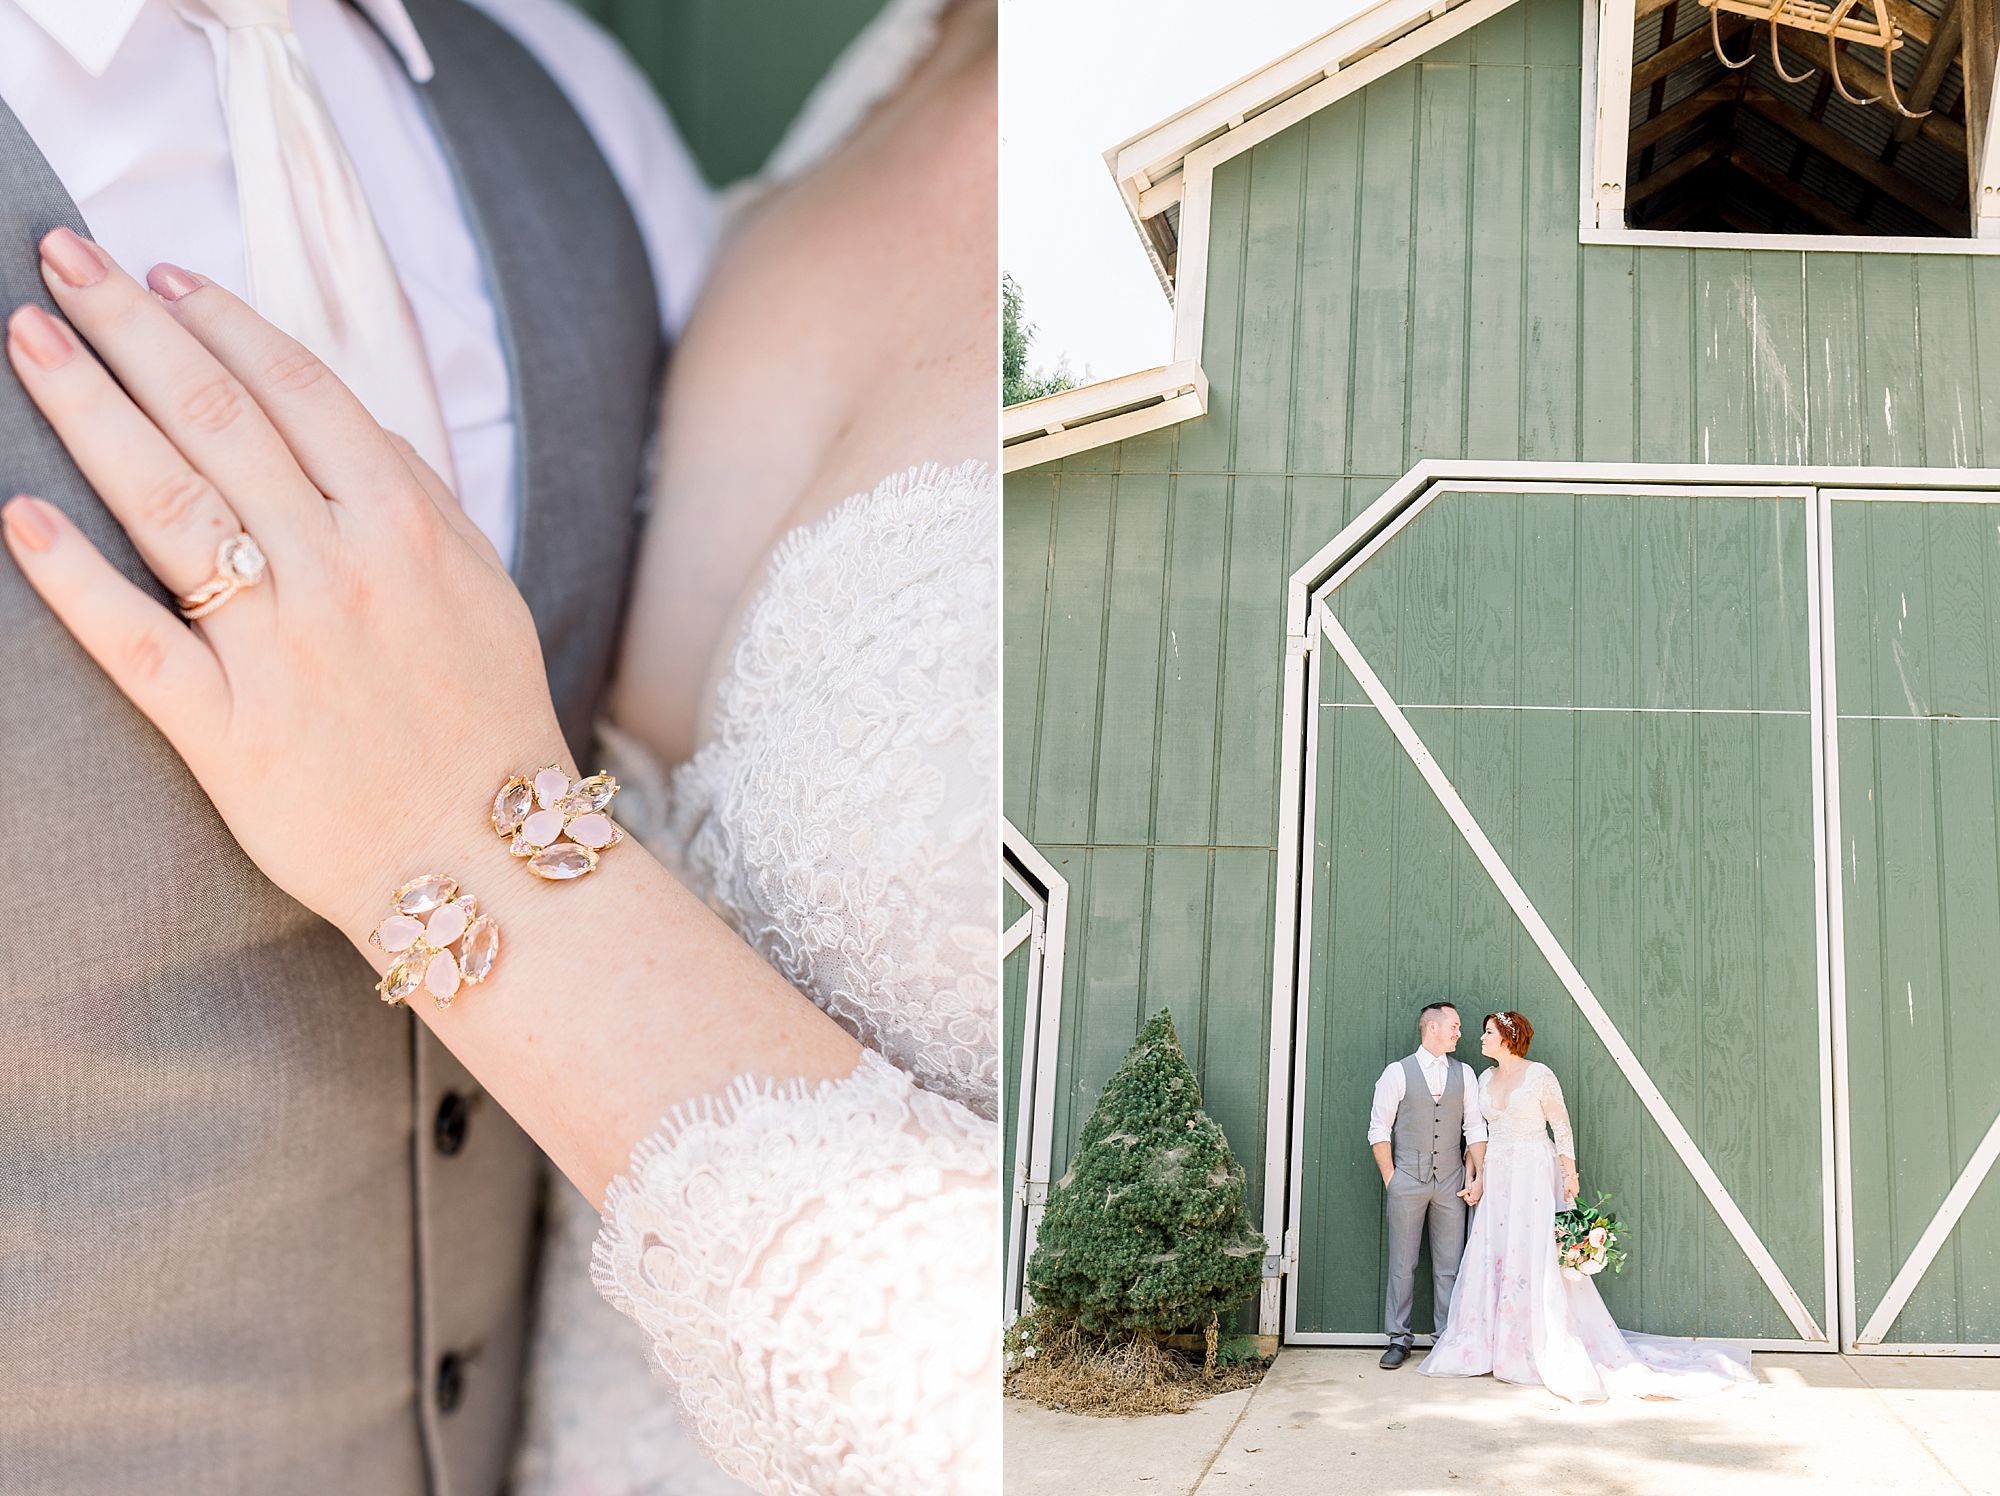 Bishops Pumpkin Farm Wedding - Annie and Logan - Ashley Baumgartner - Wheatland Wedding Photographer_0032.jpg